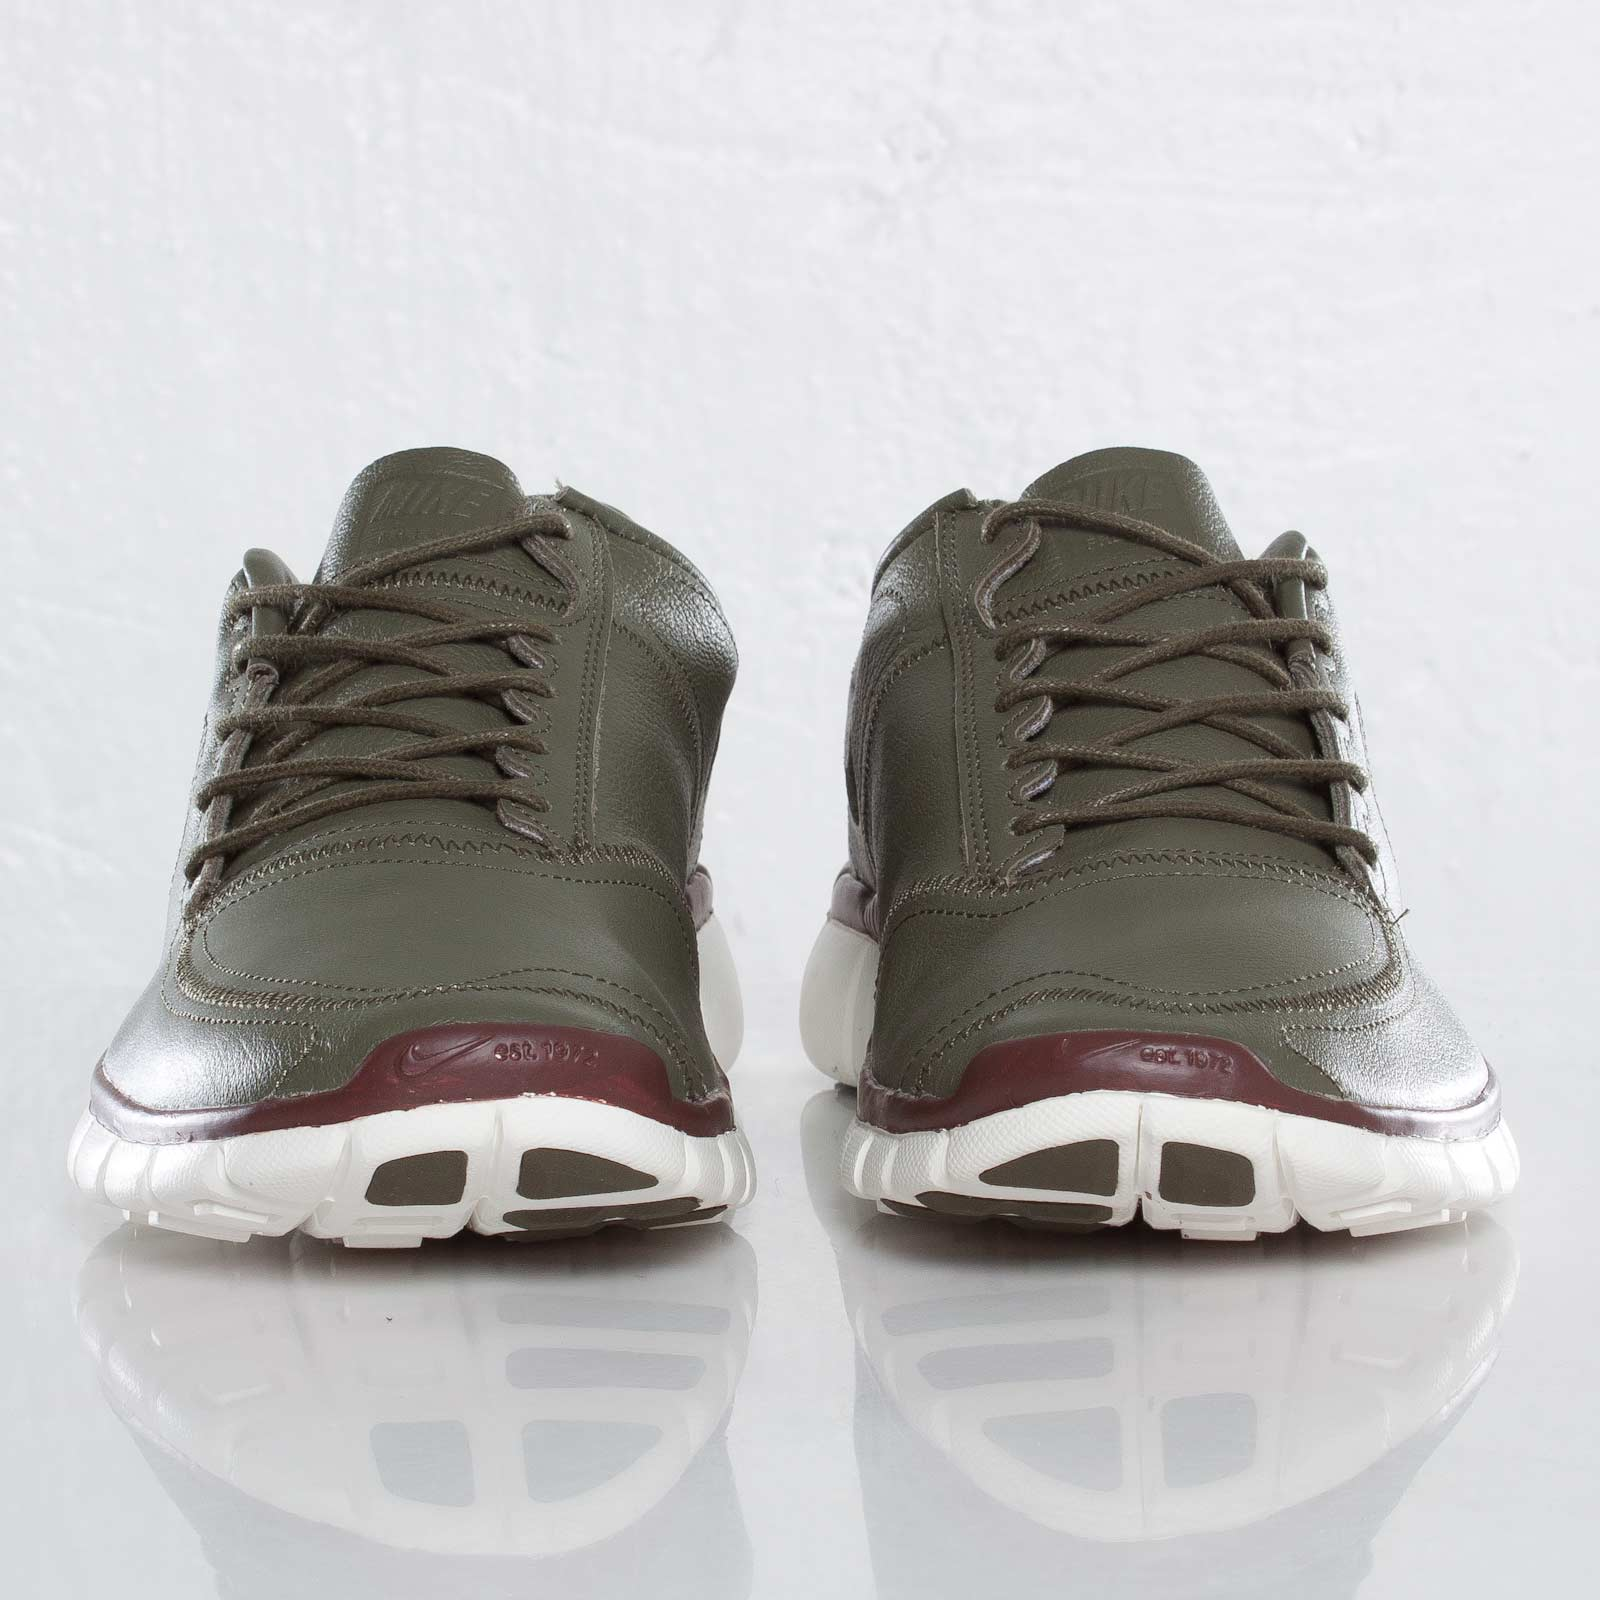 Nike Free 5.0 V4 Deconstruct Leather Shoes Air Max 90 Nike